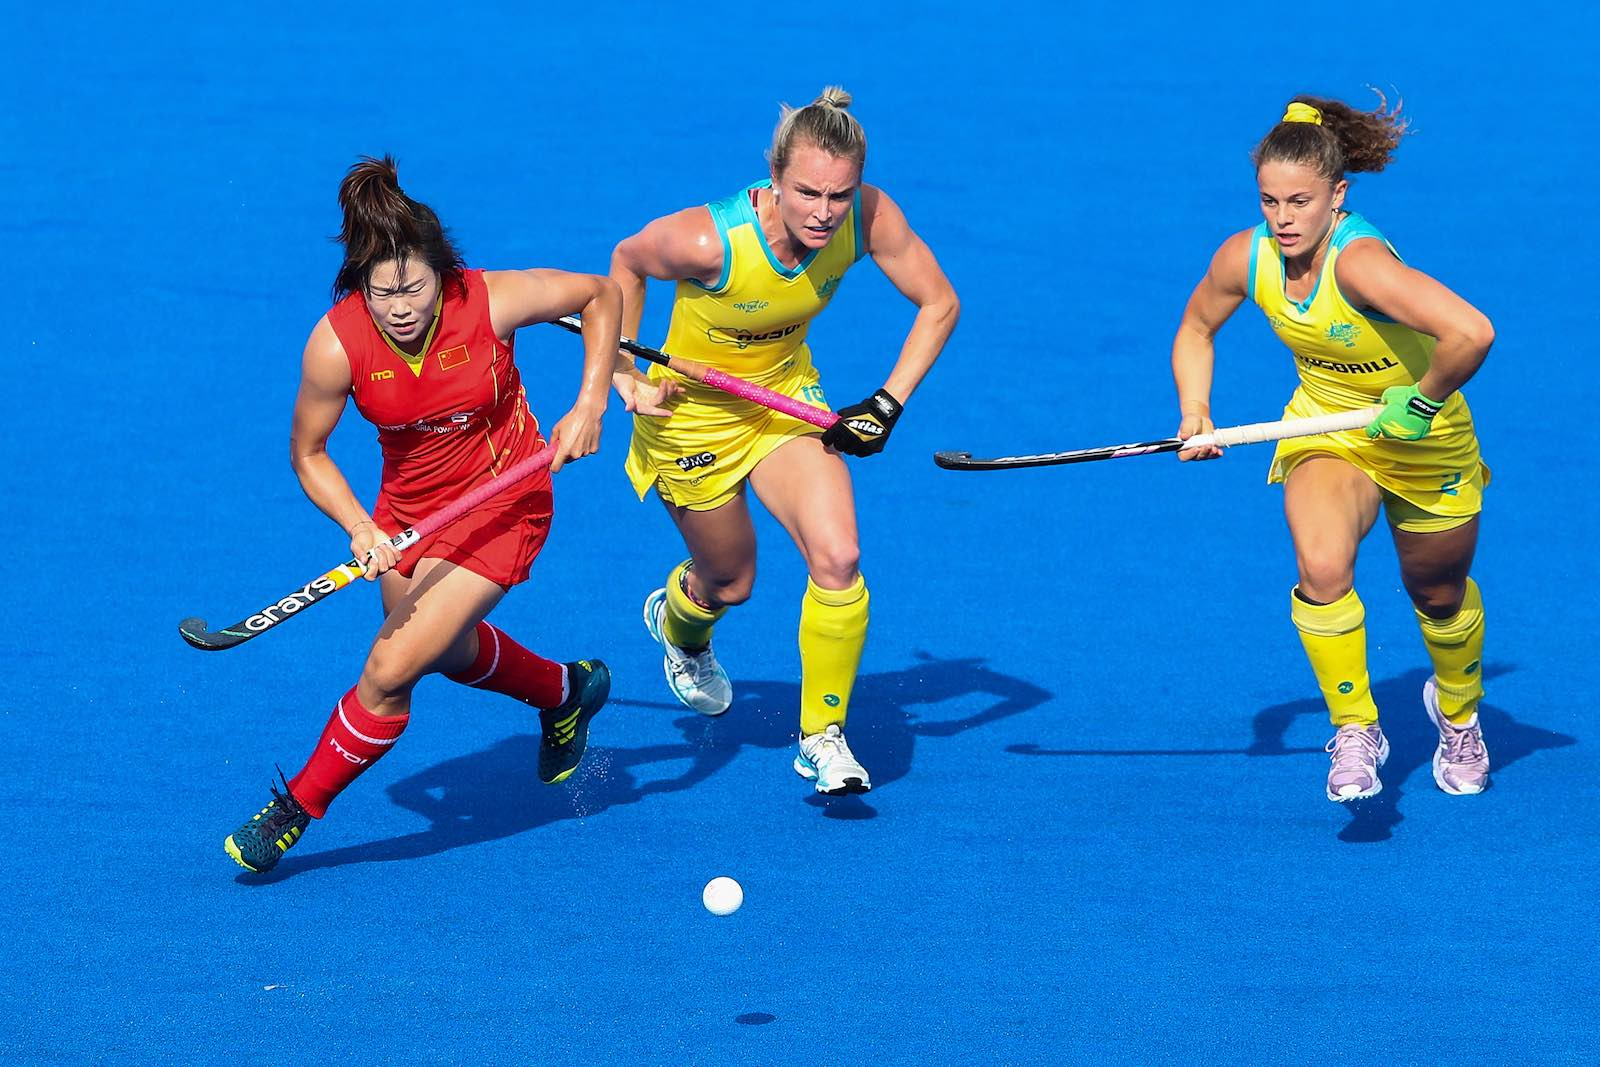 China plays Australia in a Women's FIH Field Hockey Pro League match on 2 June in Changzhou, China (Photo: Lintao Zhang/Getty)